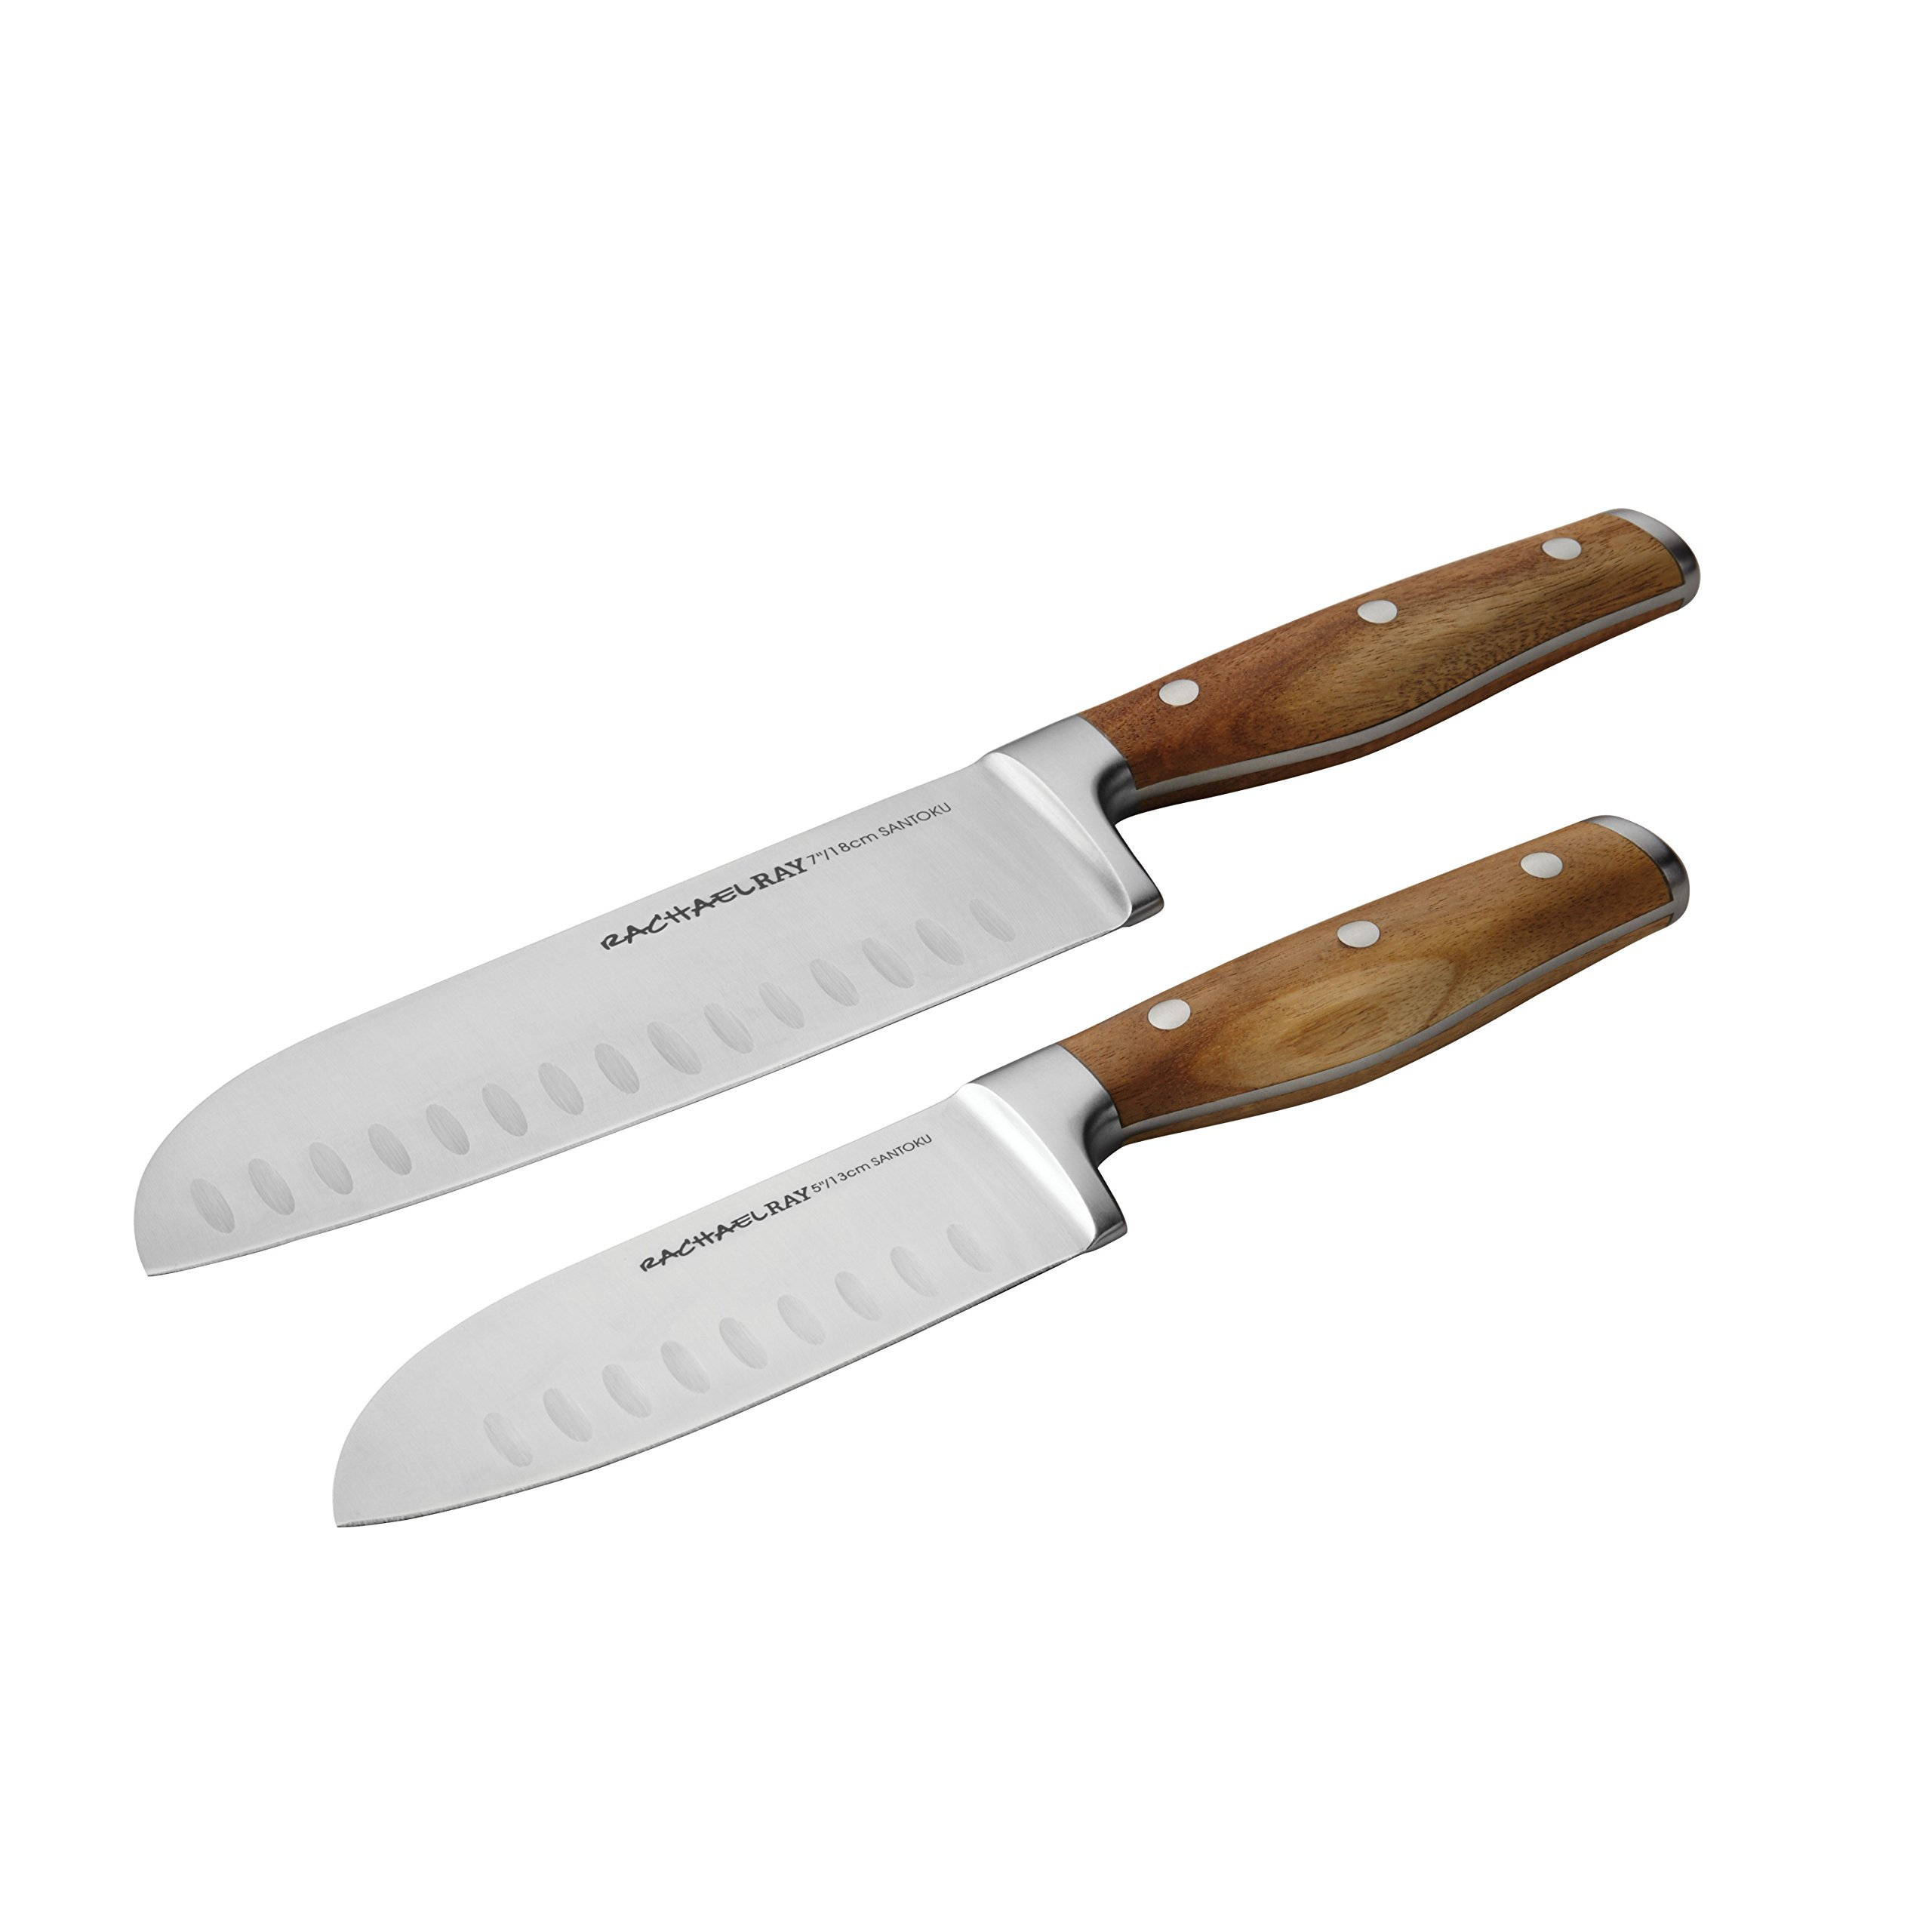 Rachael Ray Cucina Cutlery 2-Piece Japanese Stainless Steel Santoku Knife Set with Acacia Handles by Rachael Ray